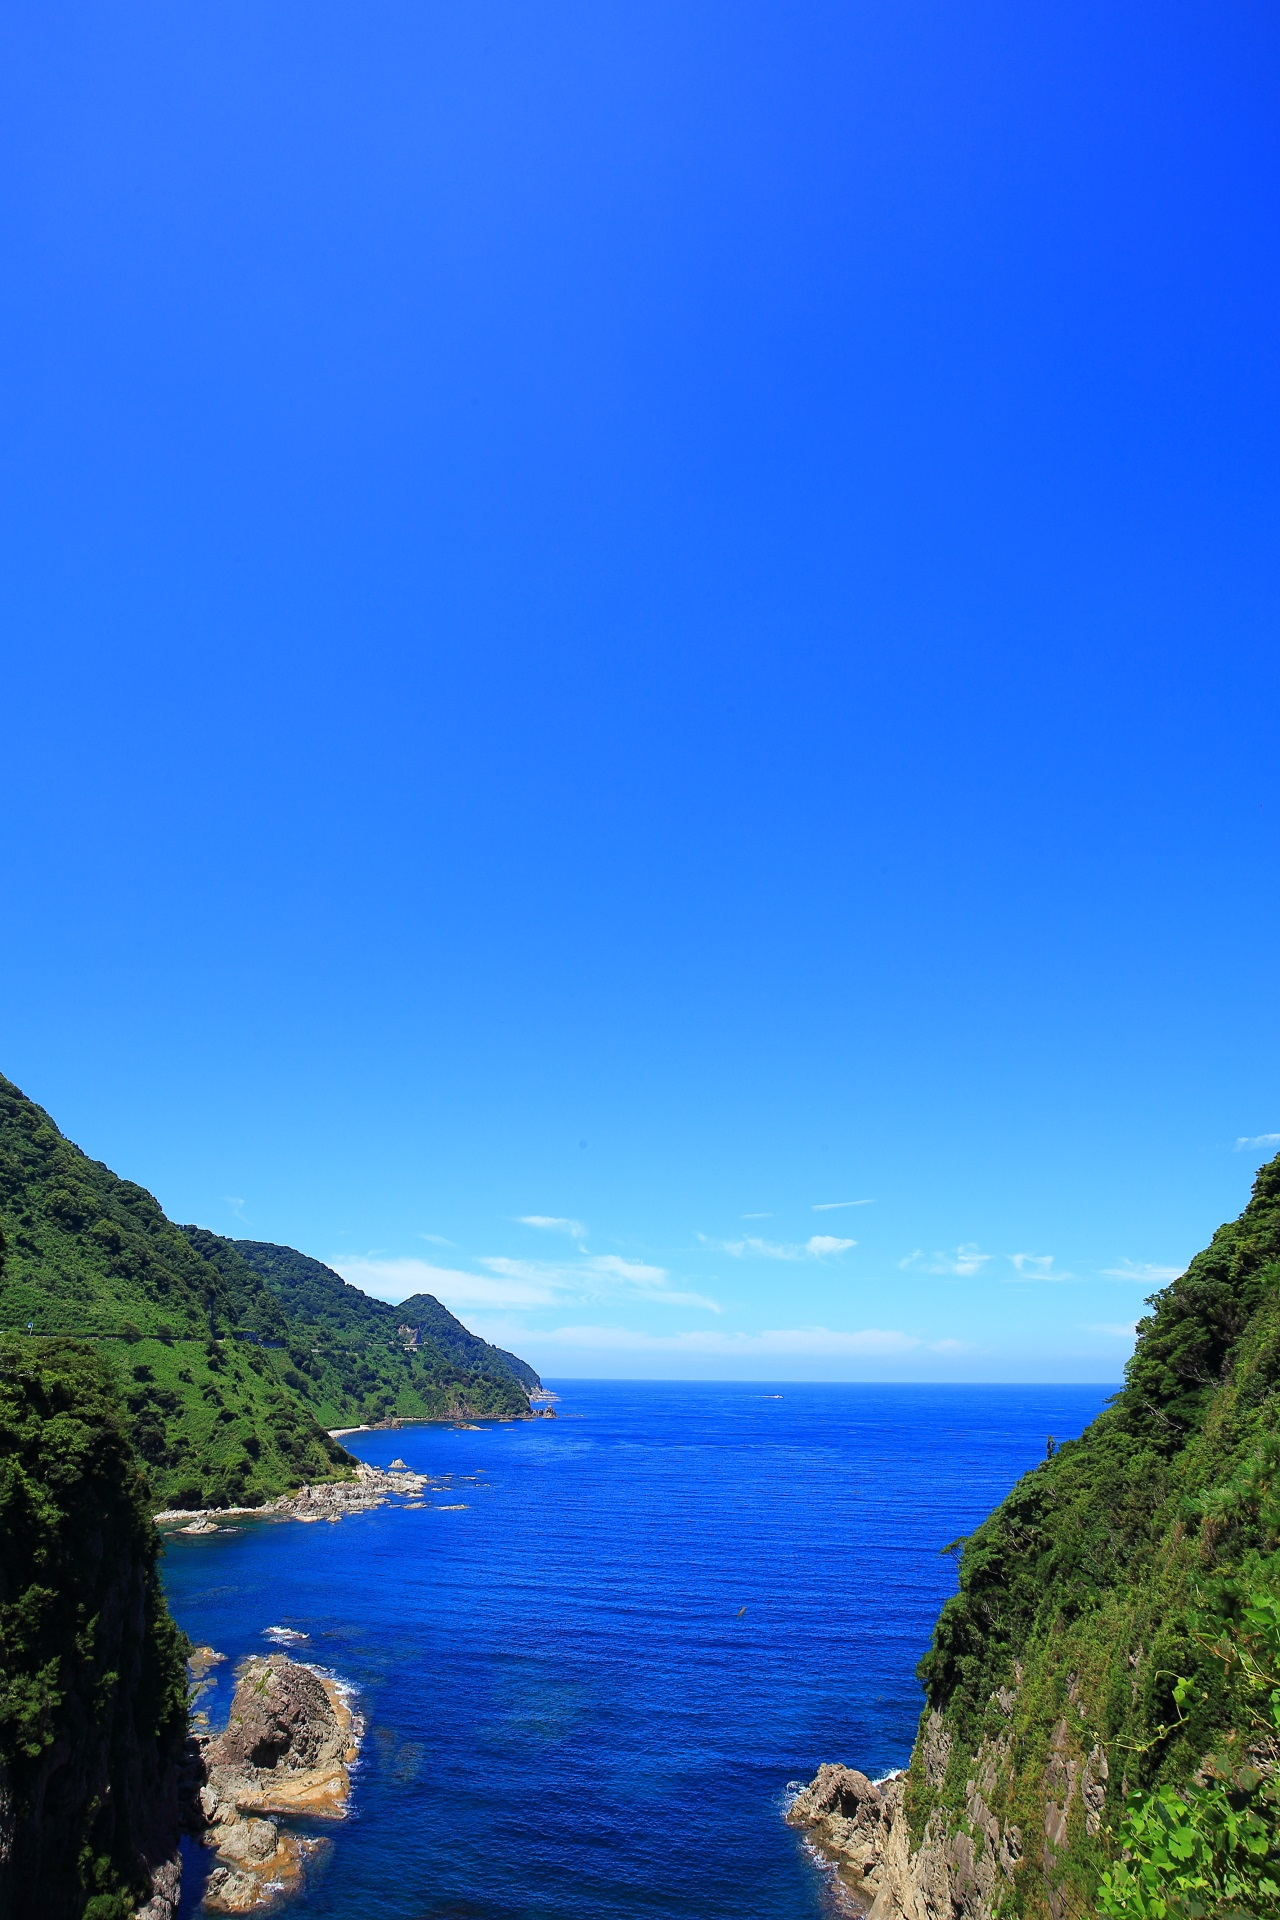 The Kamaya Coast and the Sea of Japan in Kyotango